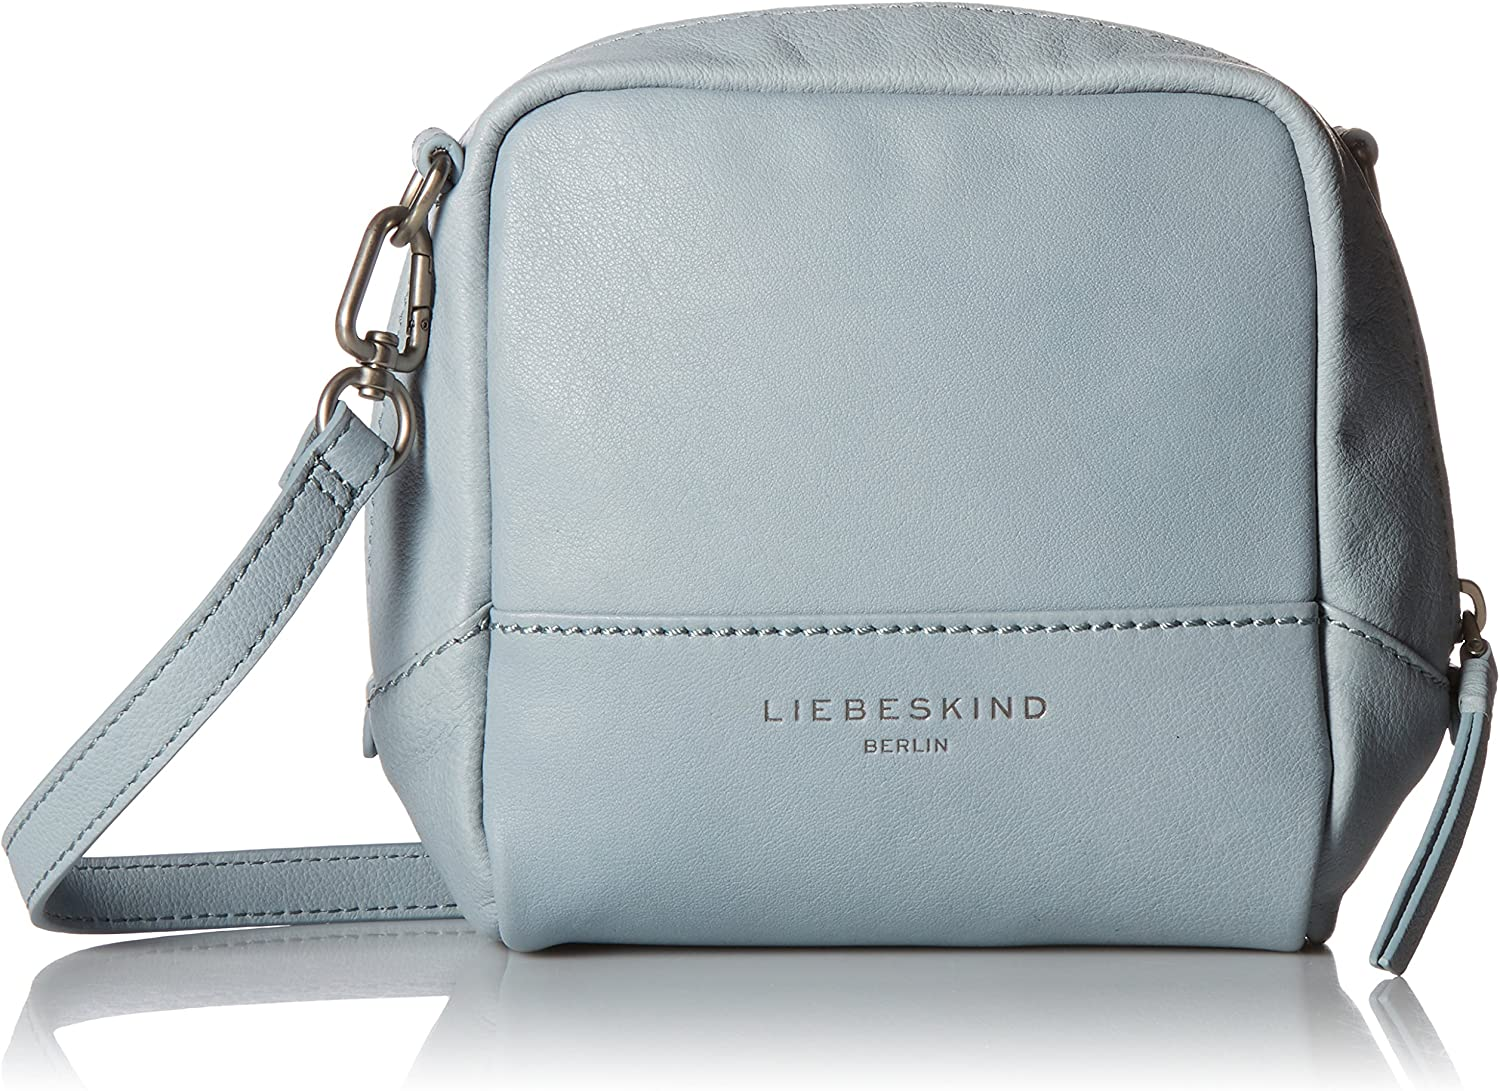 Liebeskind Berlin Women's Acapulco Leather Rounded Crossbody